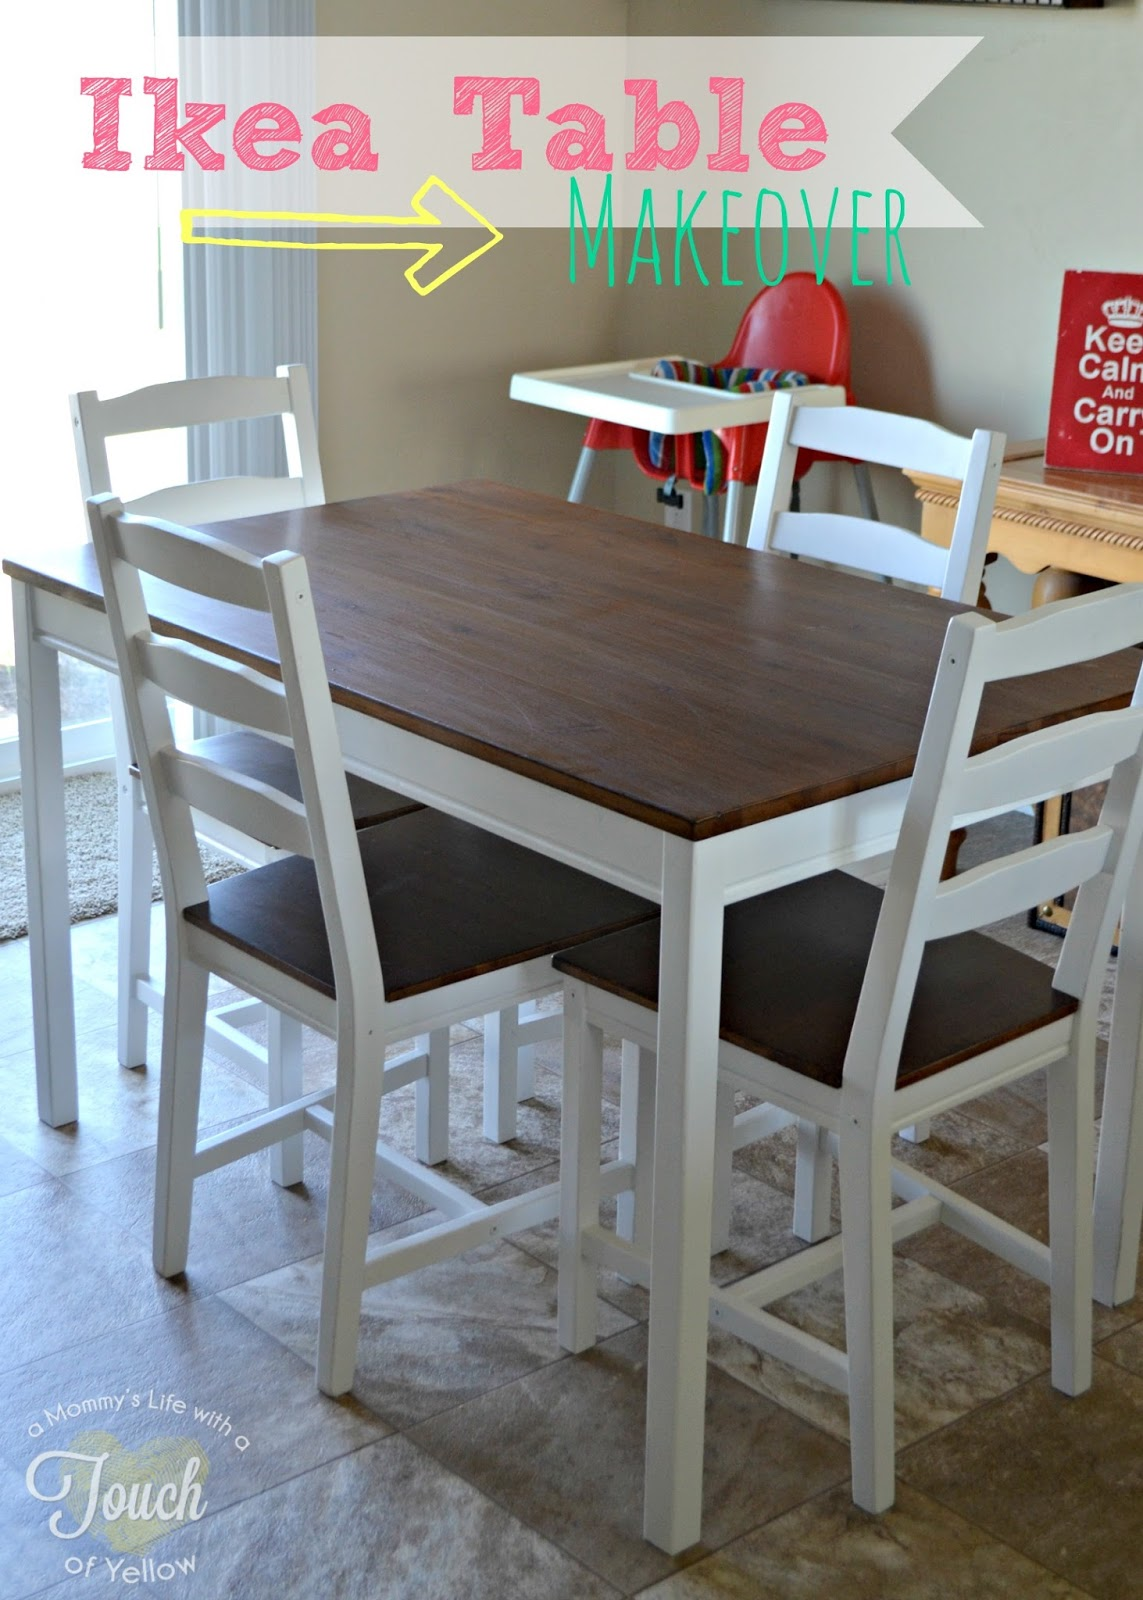 A mommys lifewith a touch of yellow ikea kitchen table makeover ikea kitchen table makeover tutorial watchthetrailerfo